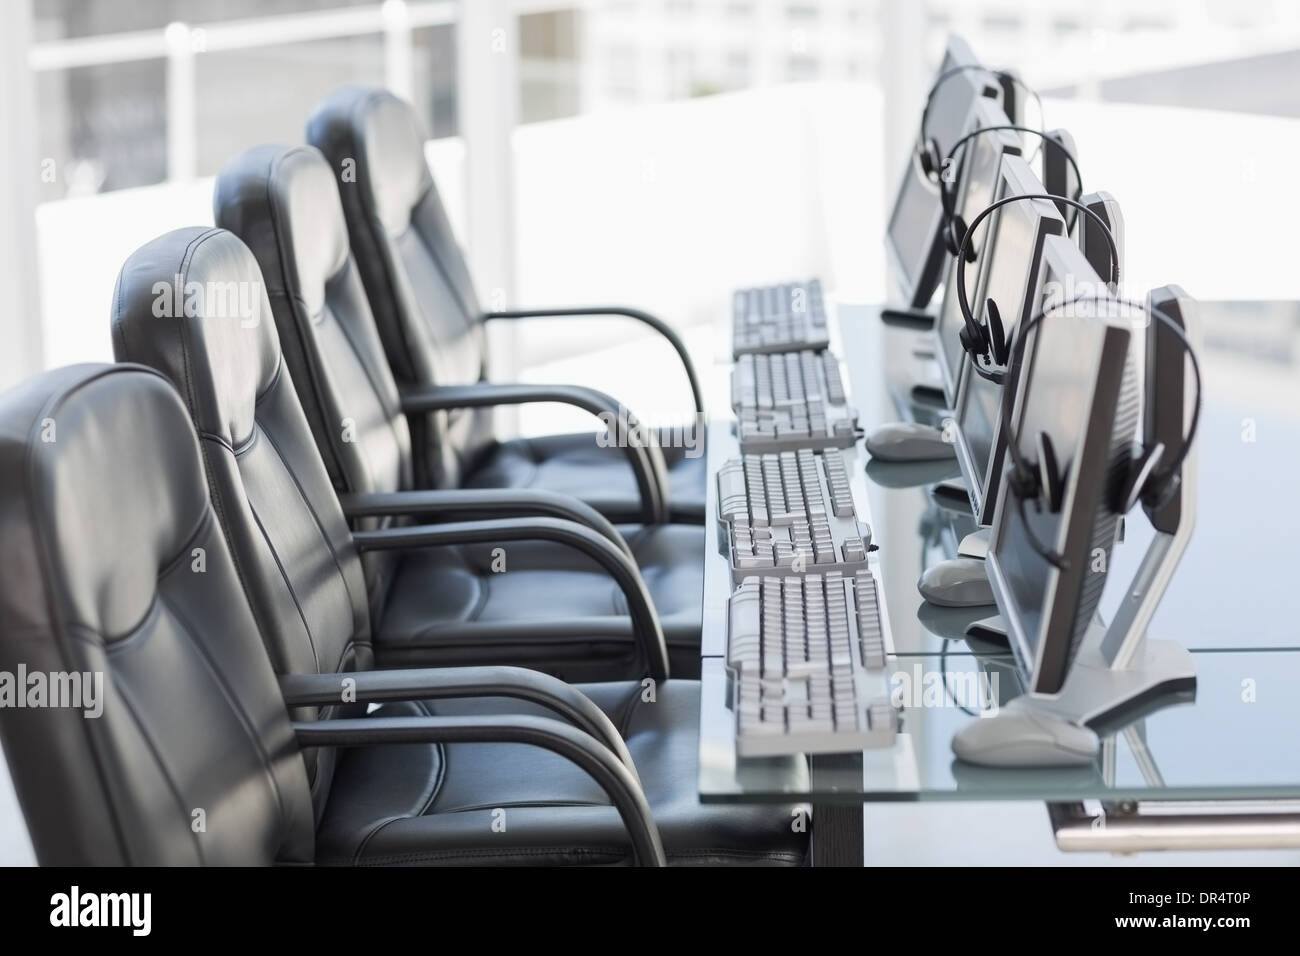 Chairs, computers and headset in a modern office - Stock Image